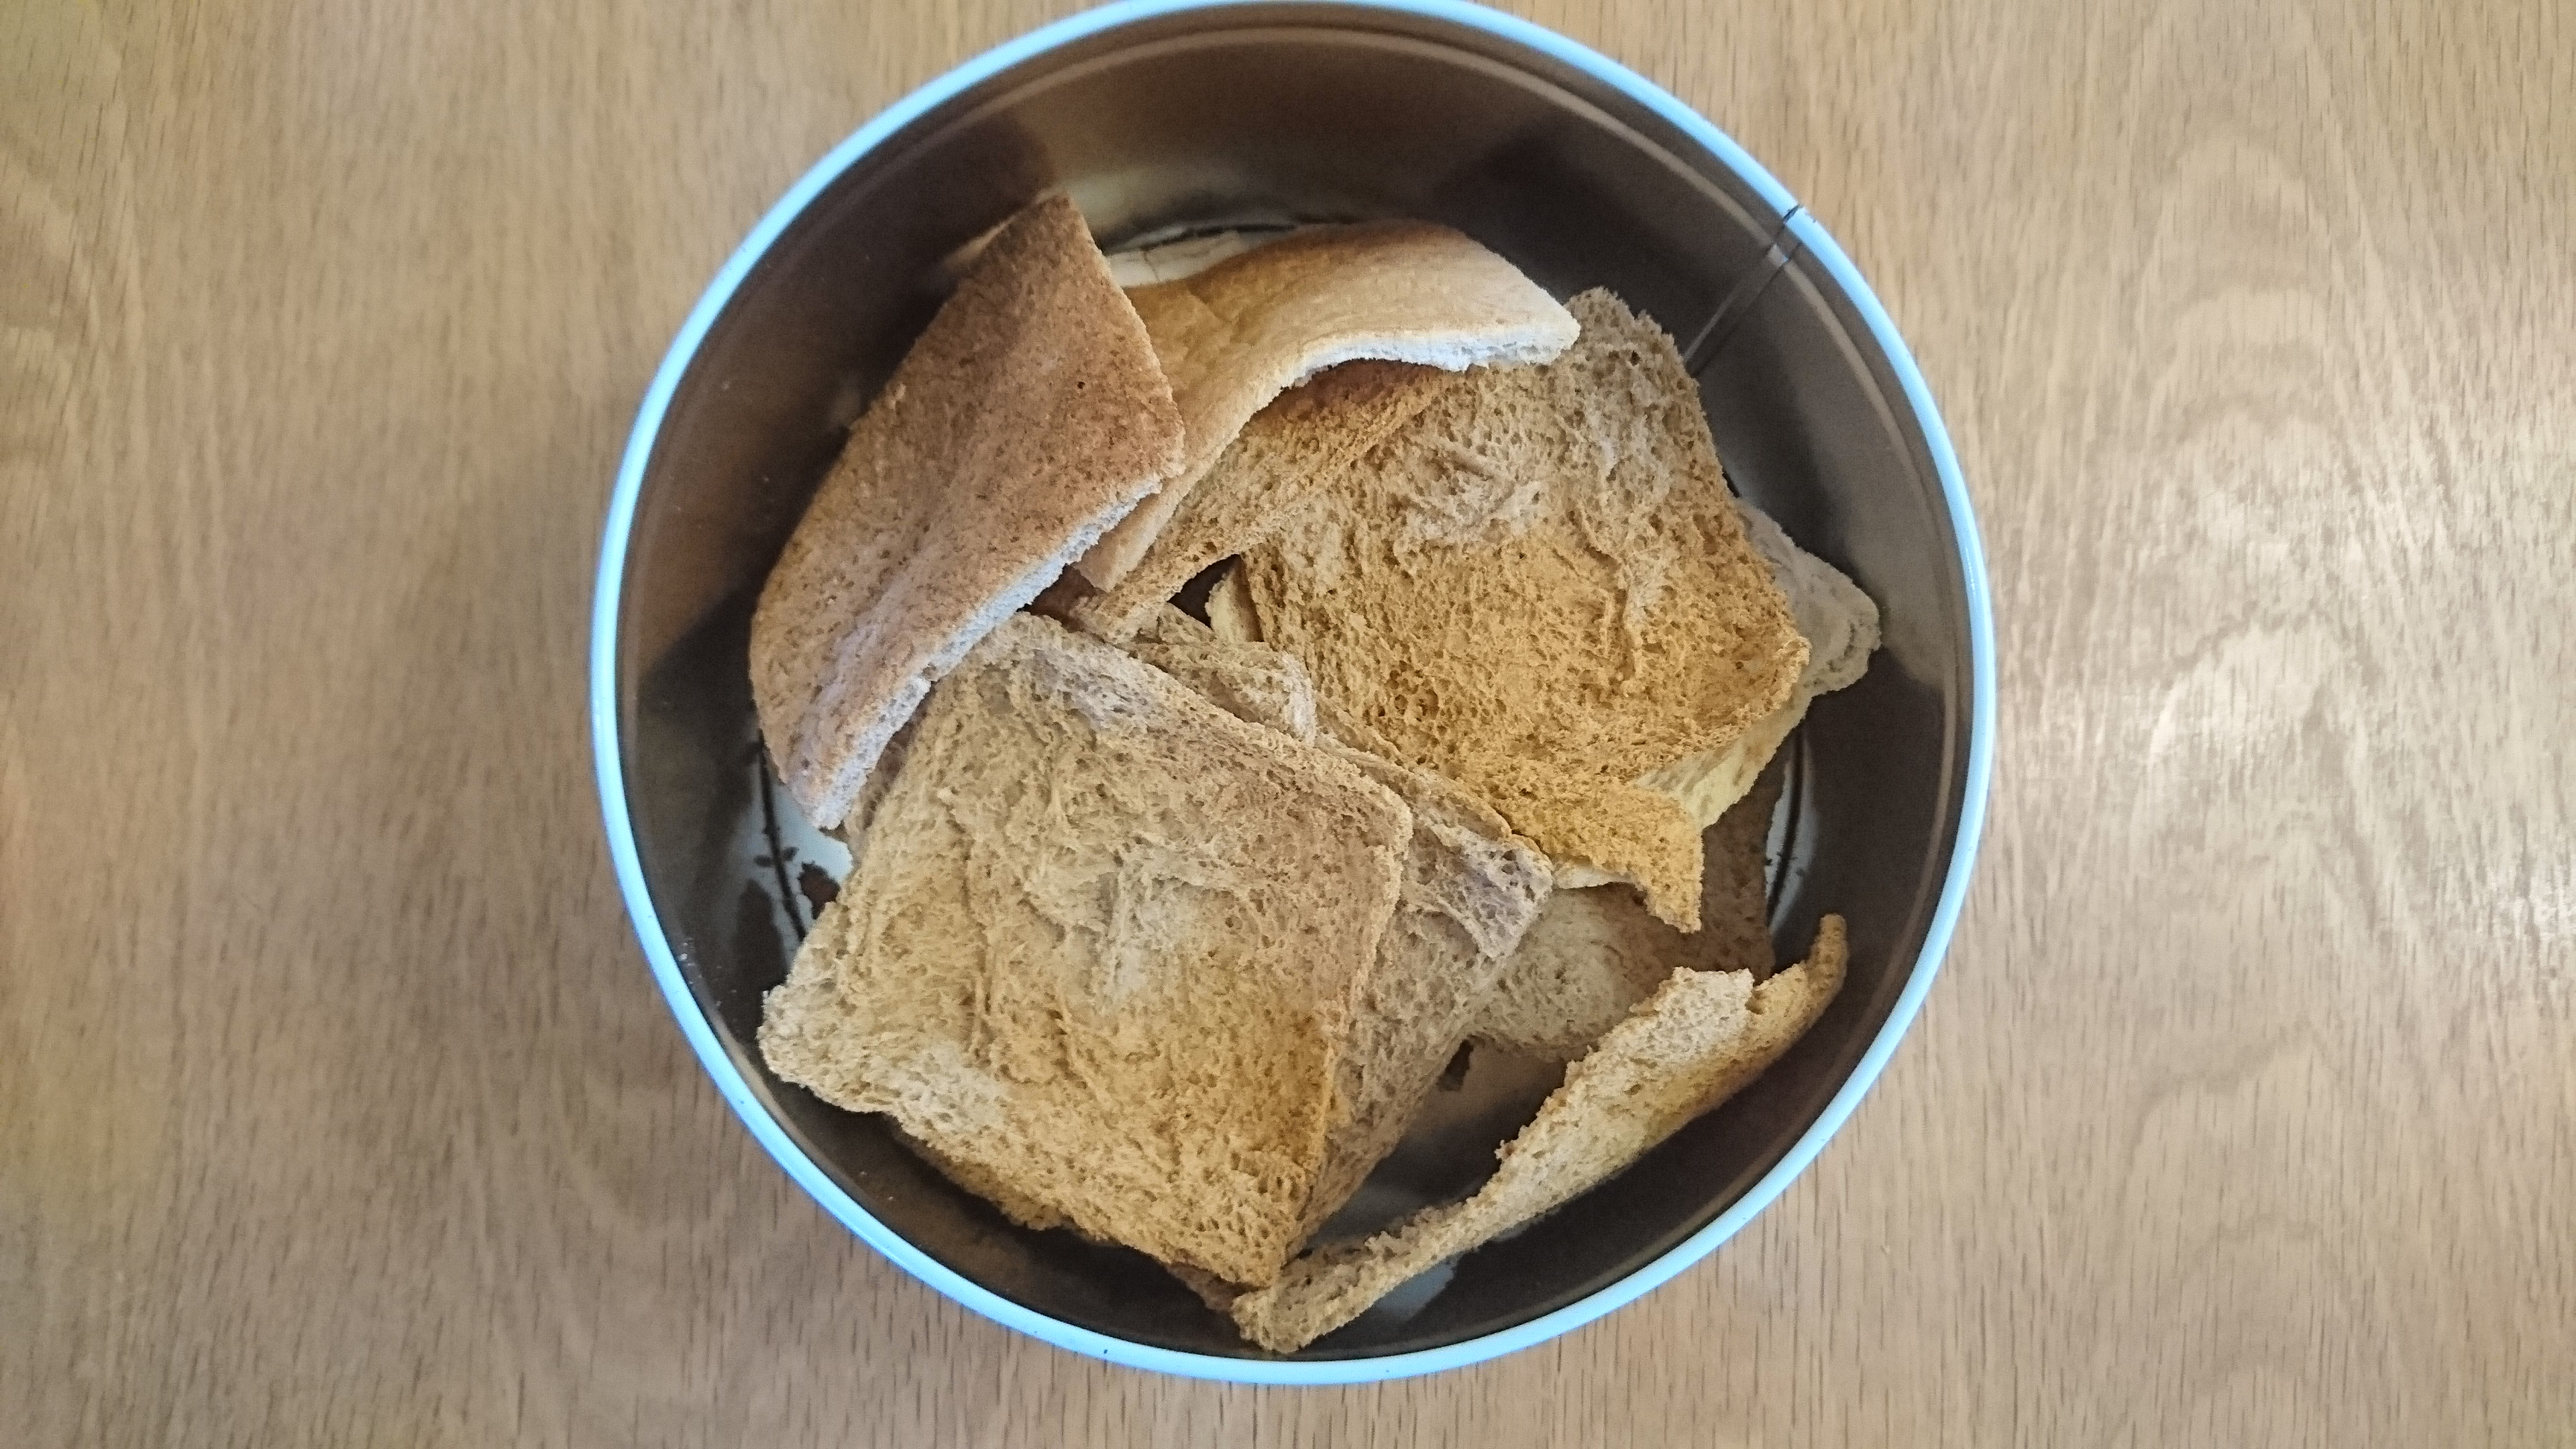 Melba toast recipe, melba toast, reduce food waste